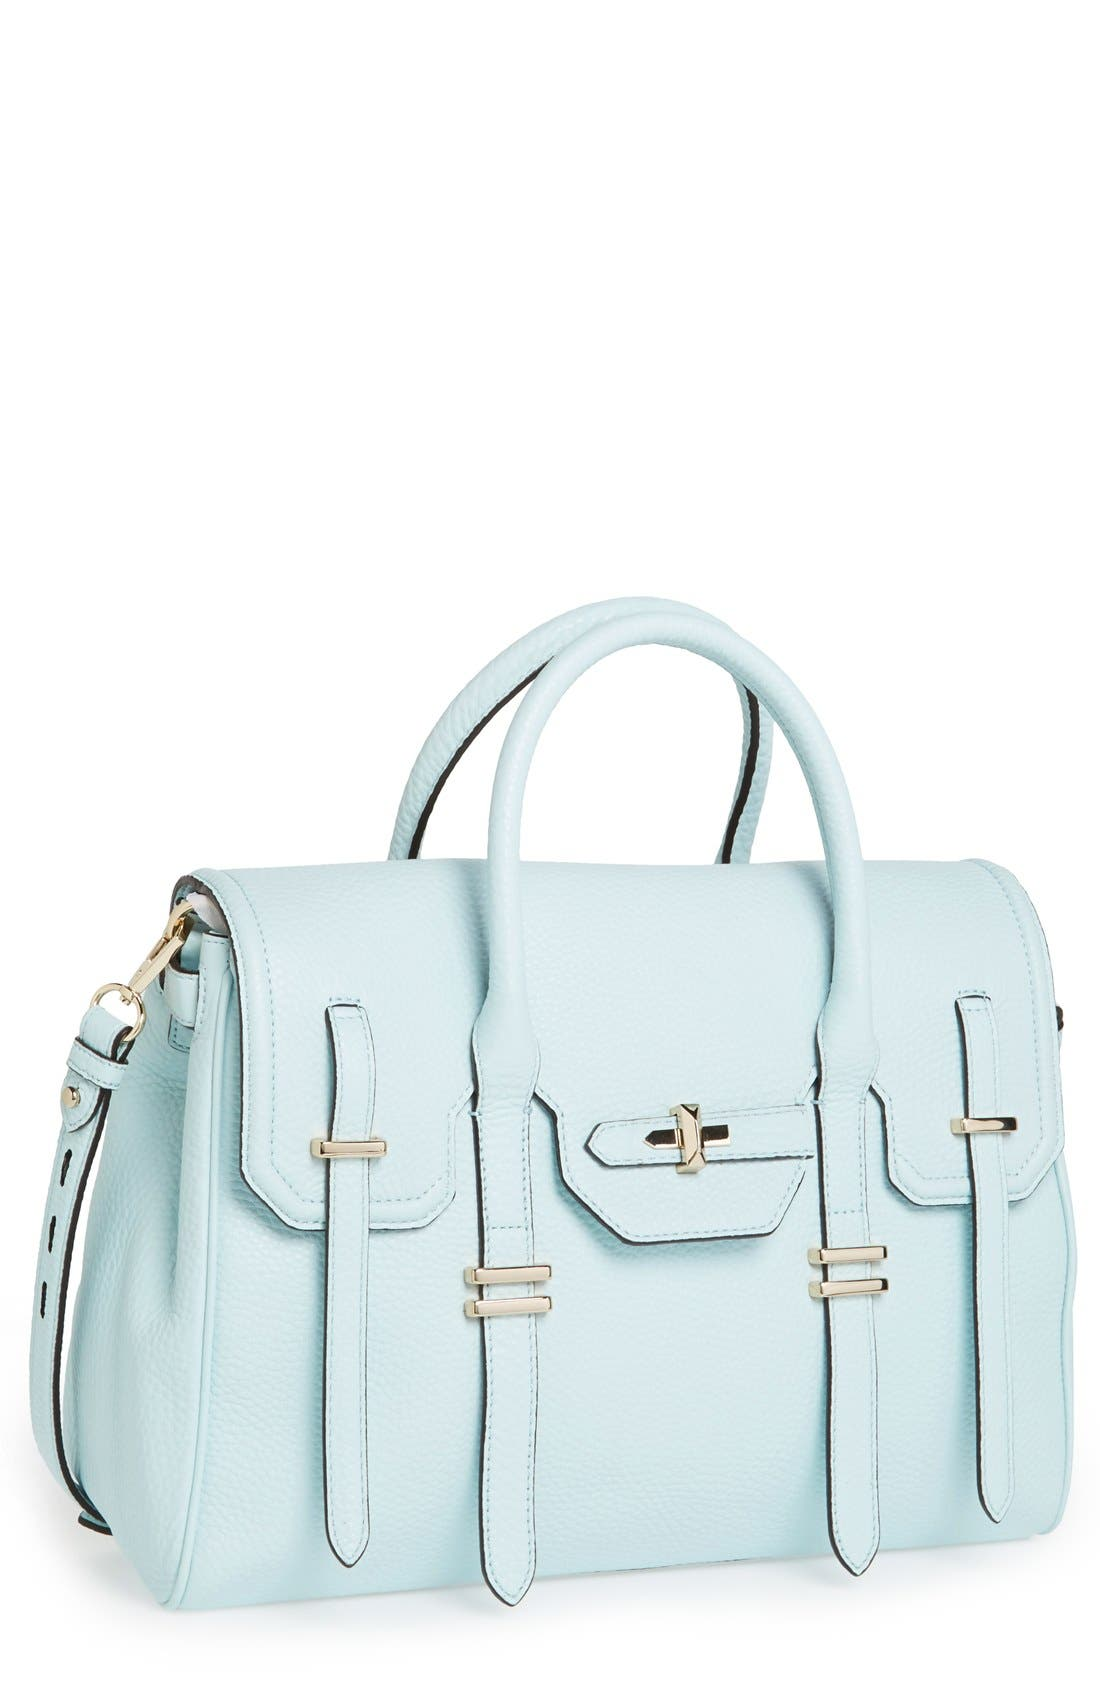 Alternate Image 1 Selected - Rebecca Minkoff 'Jules' Leather Satchel